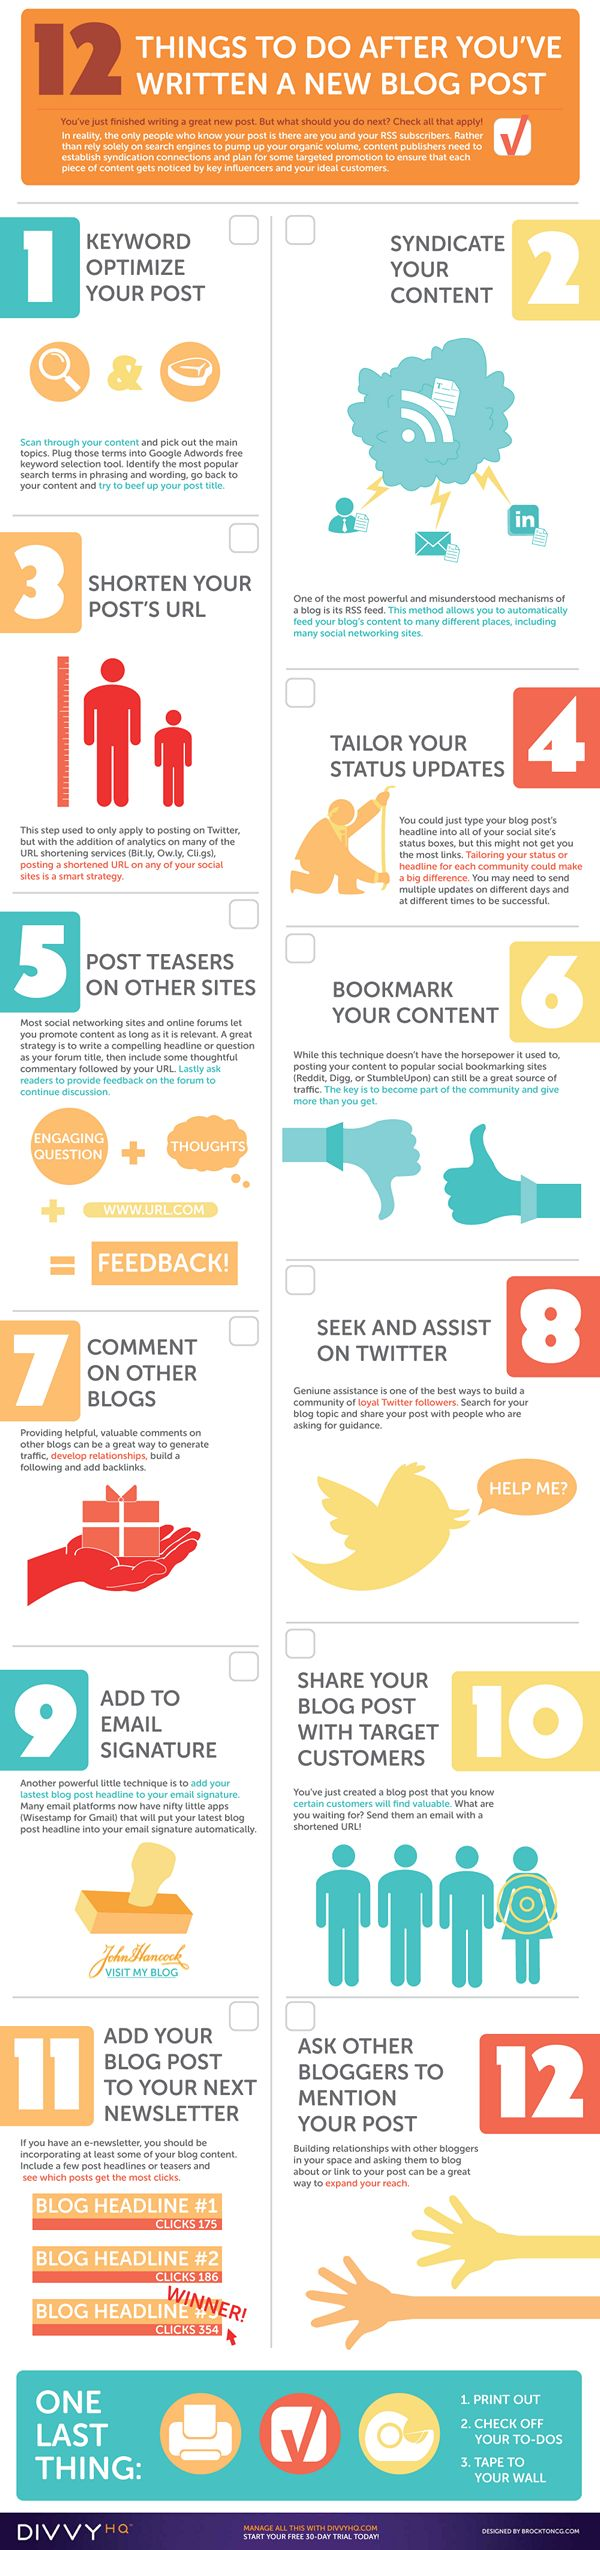 12 Things To Do After You Wrote A Blogpost – Checklist [Infographic] – http://www.ruhanirabin.com/market-blog-post-checklist-infographic/